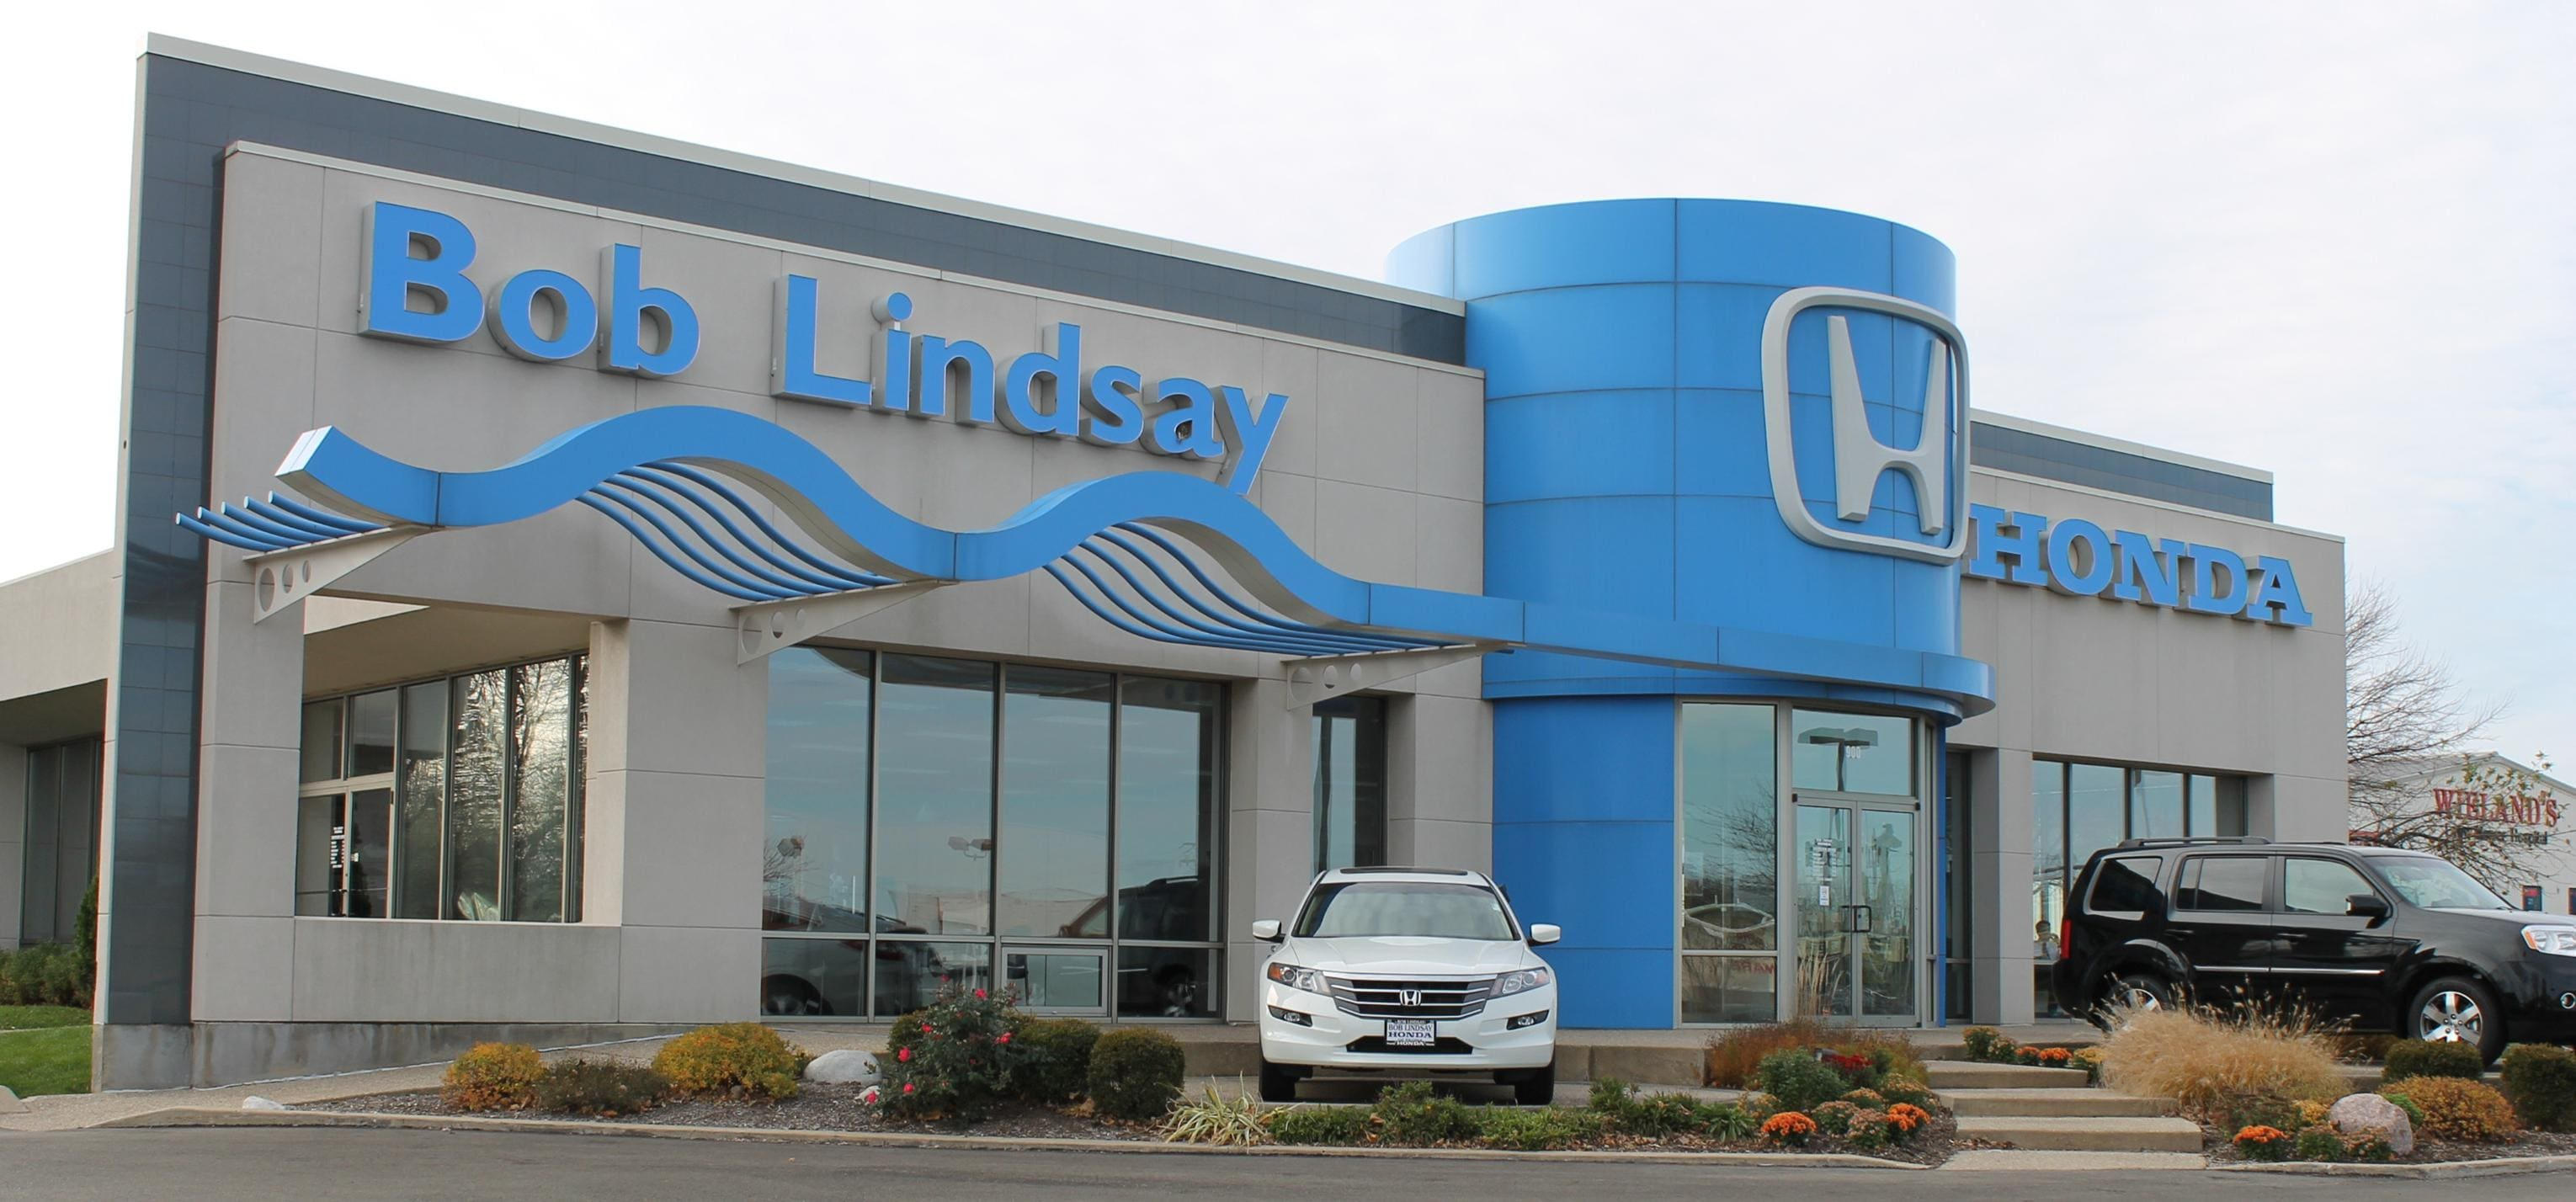 about bob lindsay honda of peoria peoria new honda